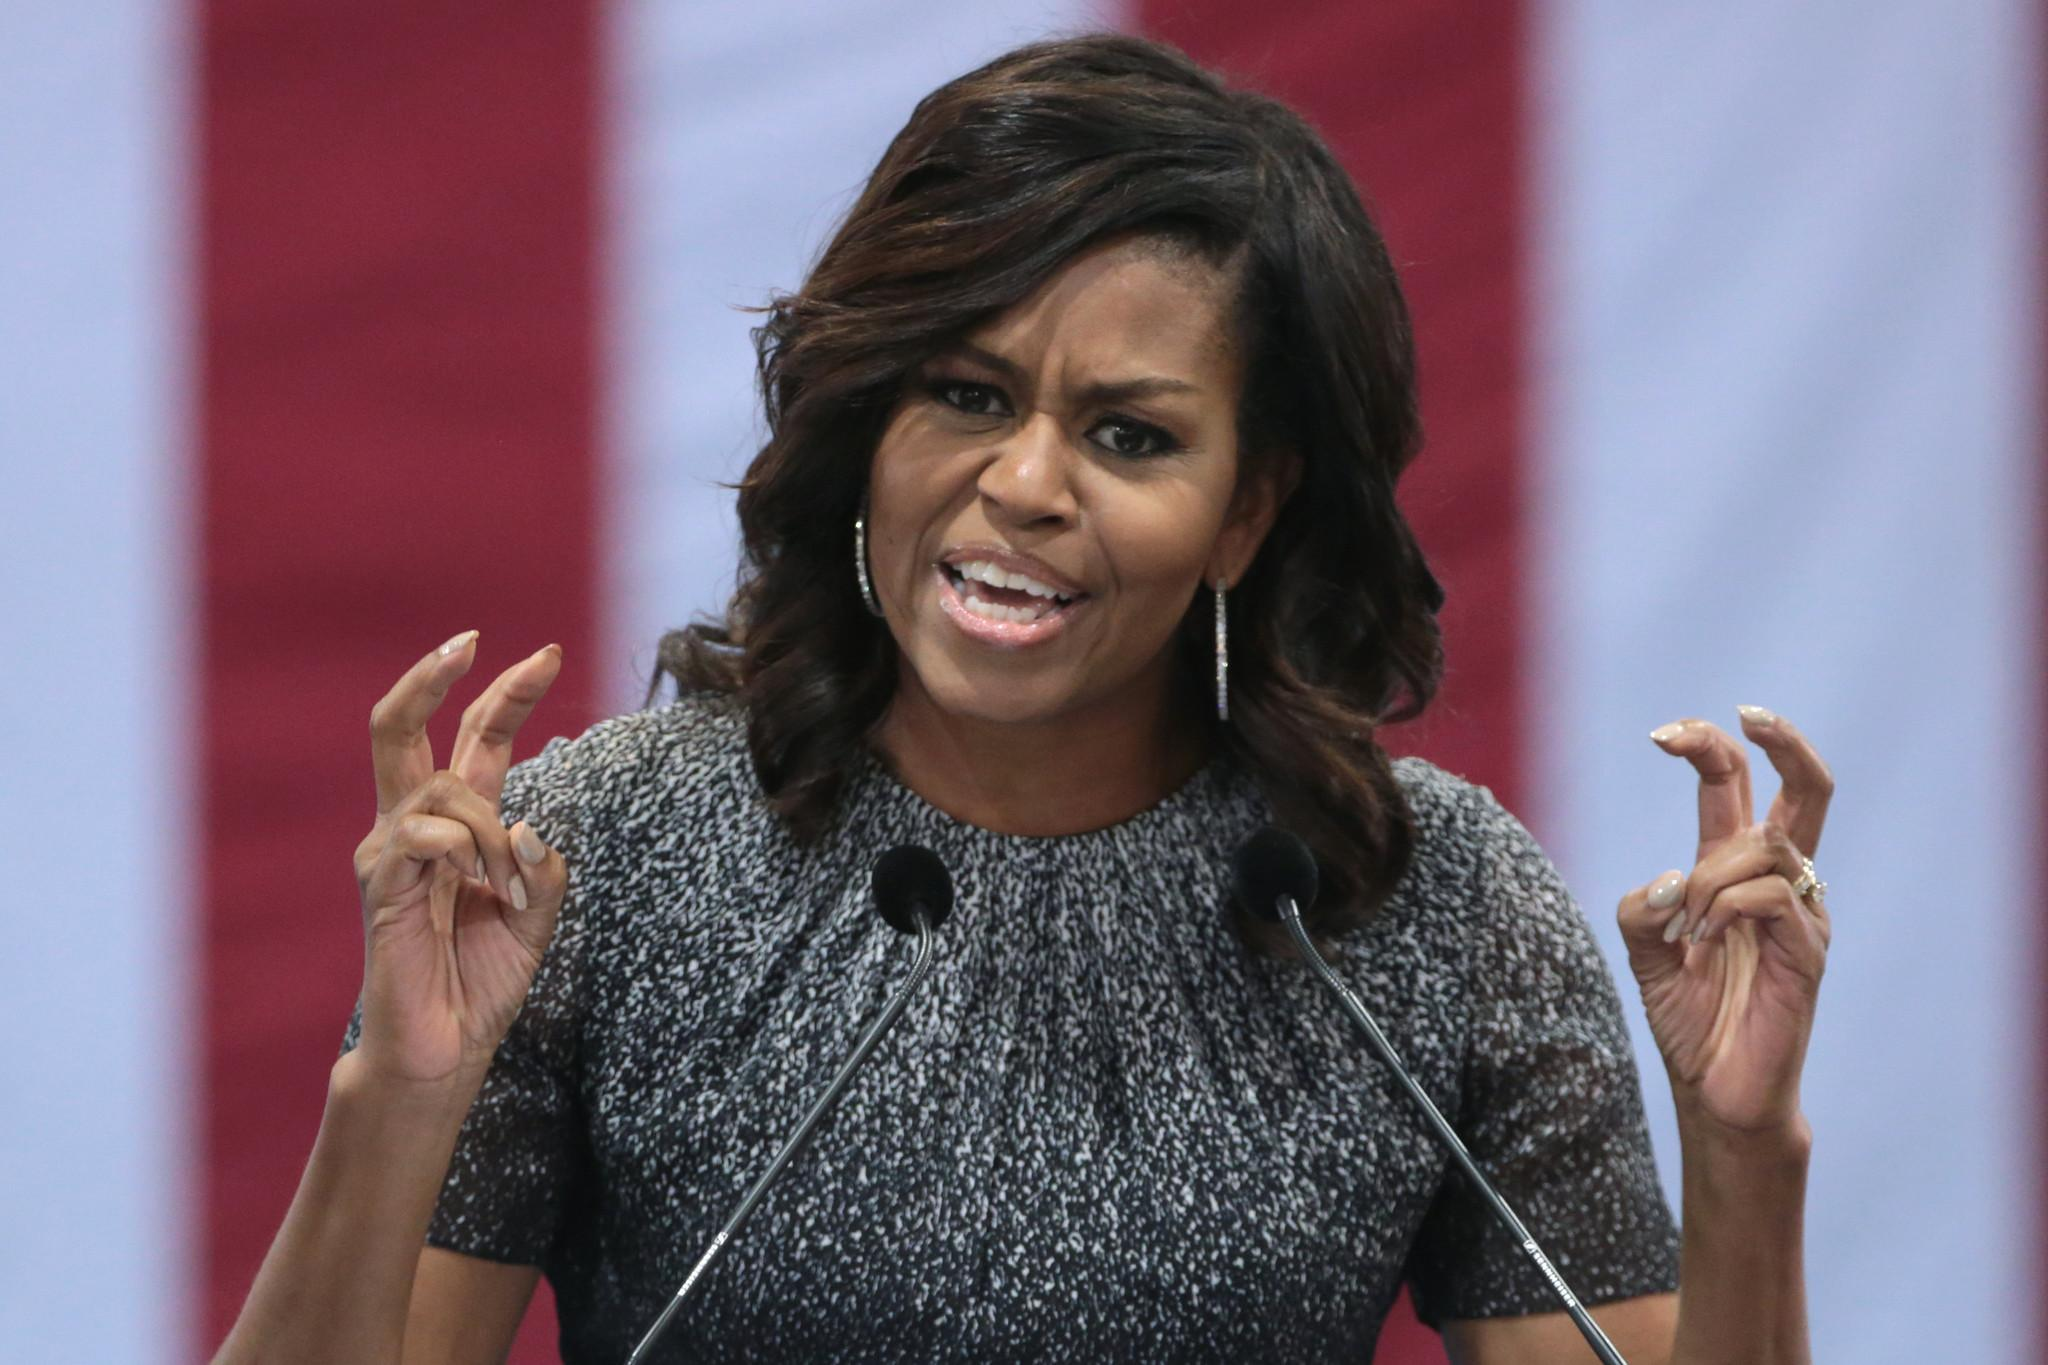 Michelle Obama at campaign rally in Phoenix, AZ